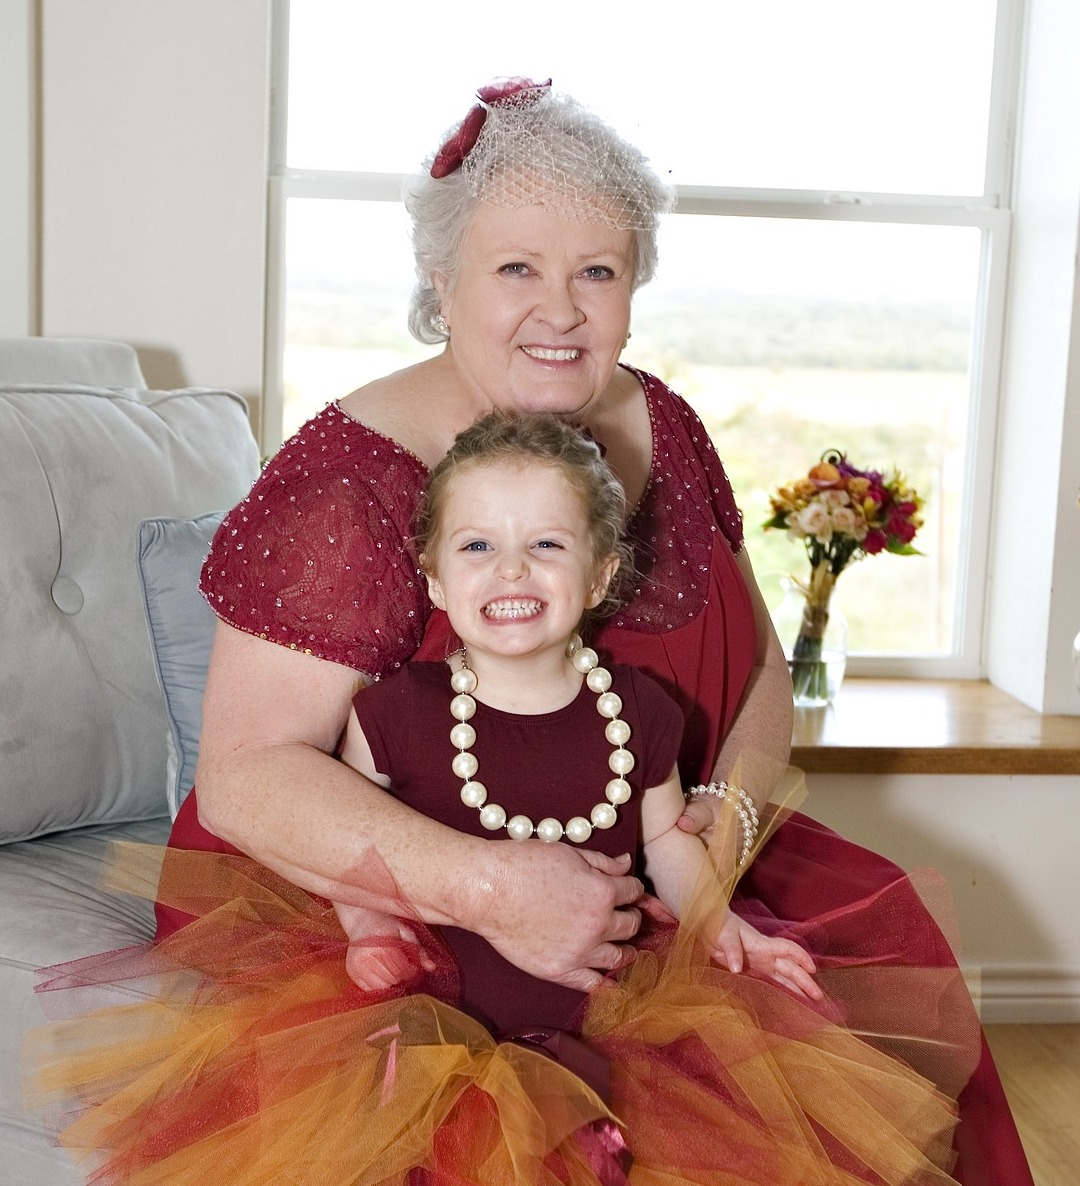 grandmother-with-granddaughter-2081318_1920.jpg